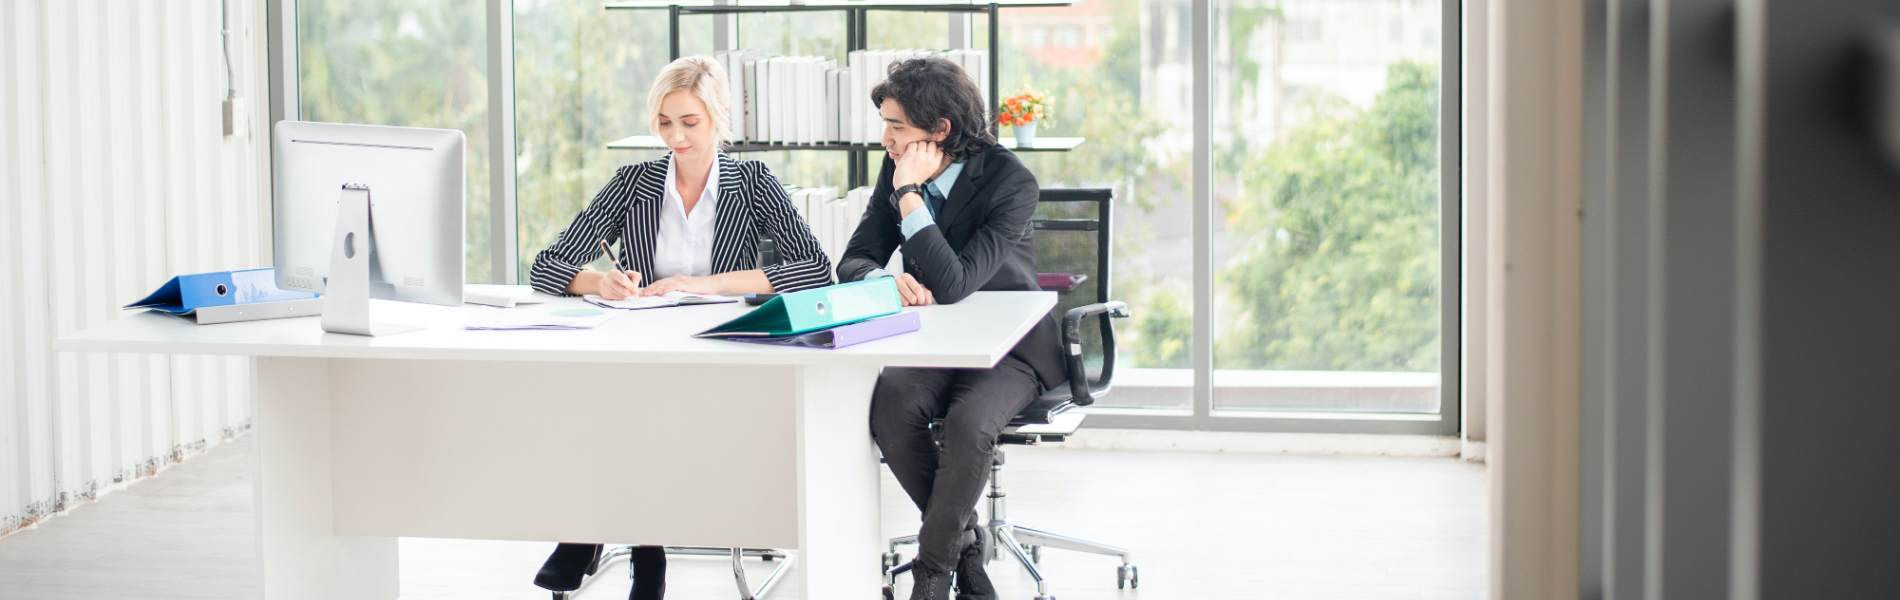 Things to consider to improve your company's training